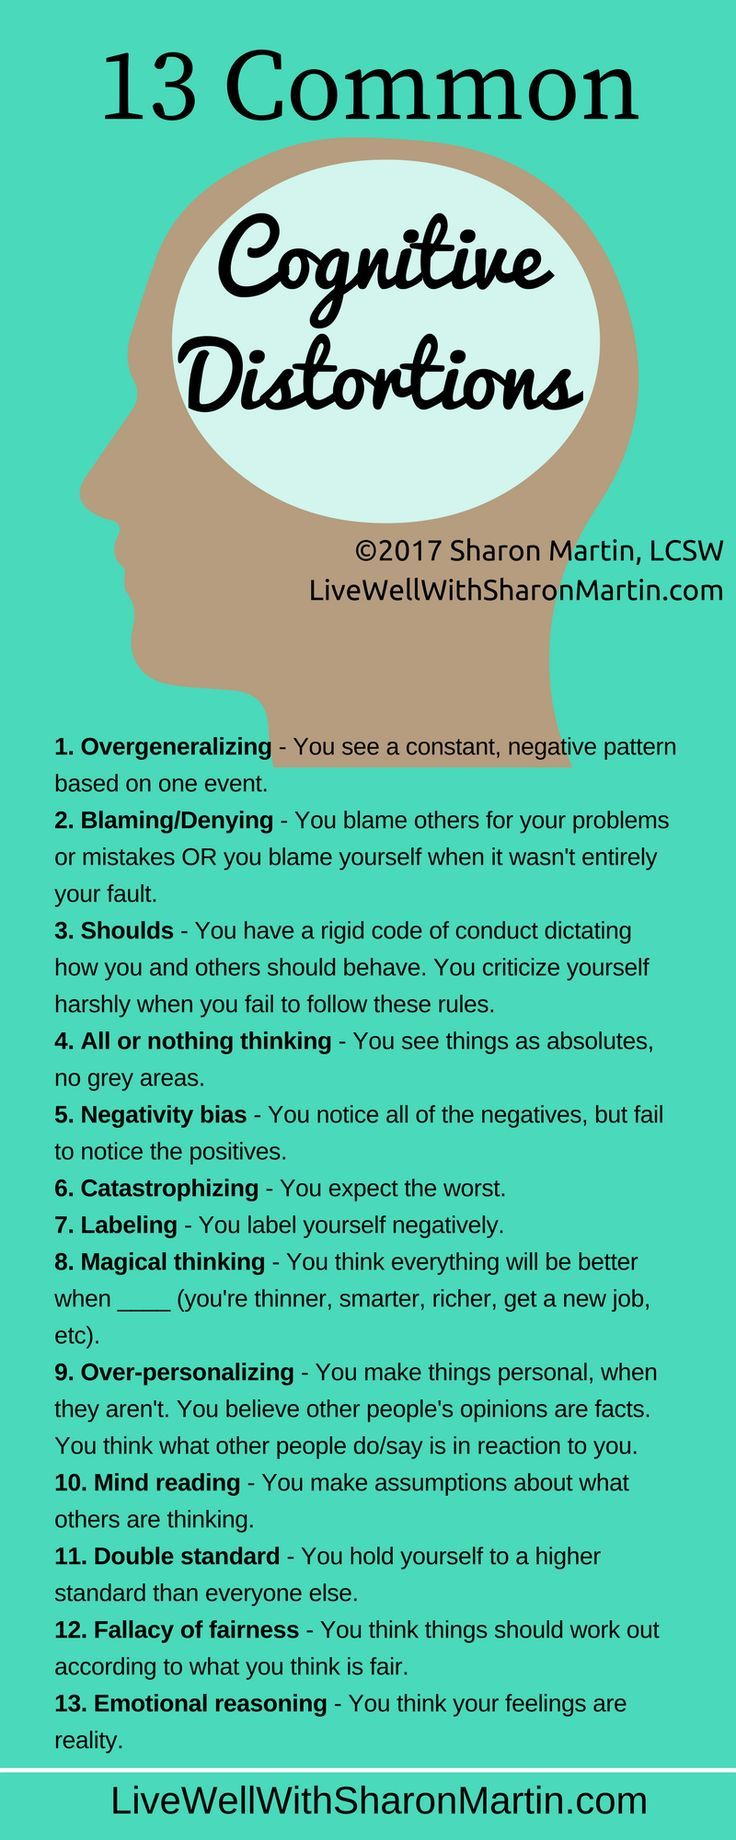 13 Common Cognitive Distortions | Cognitive distortions ...